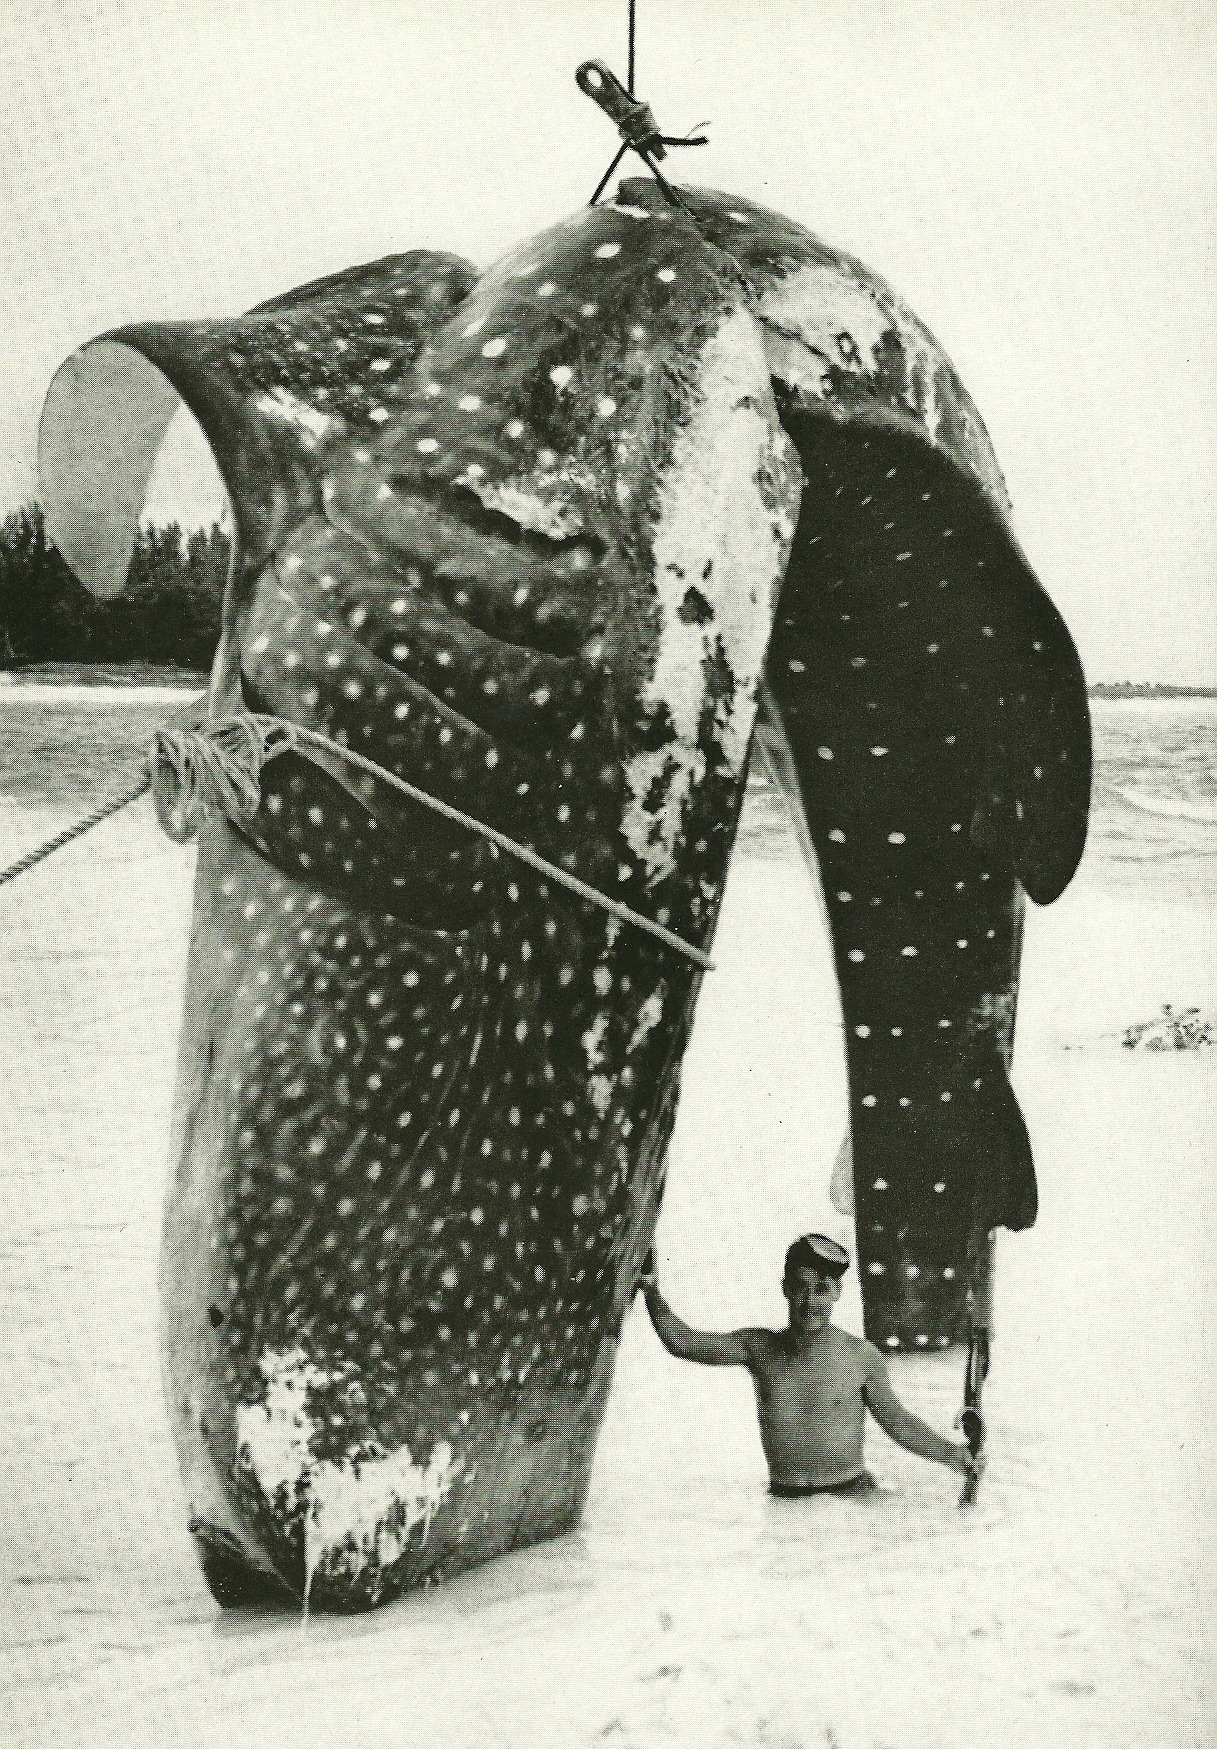 Whale shark in Bimini, Bahamas National Geographic | February 1958